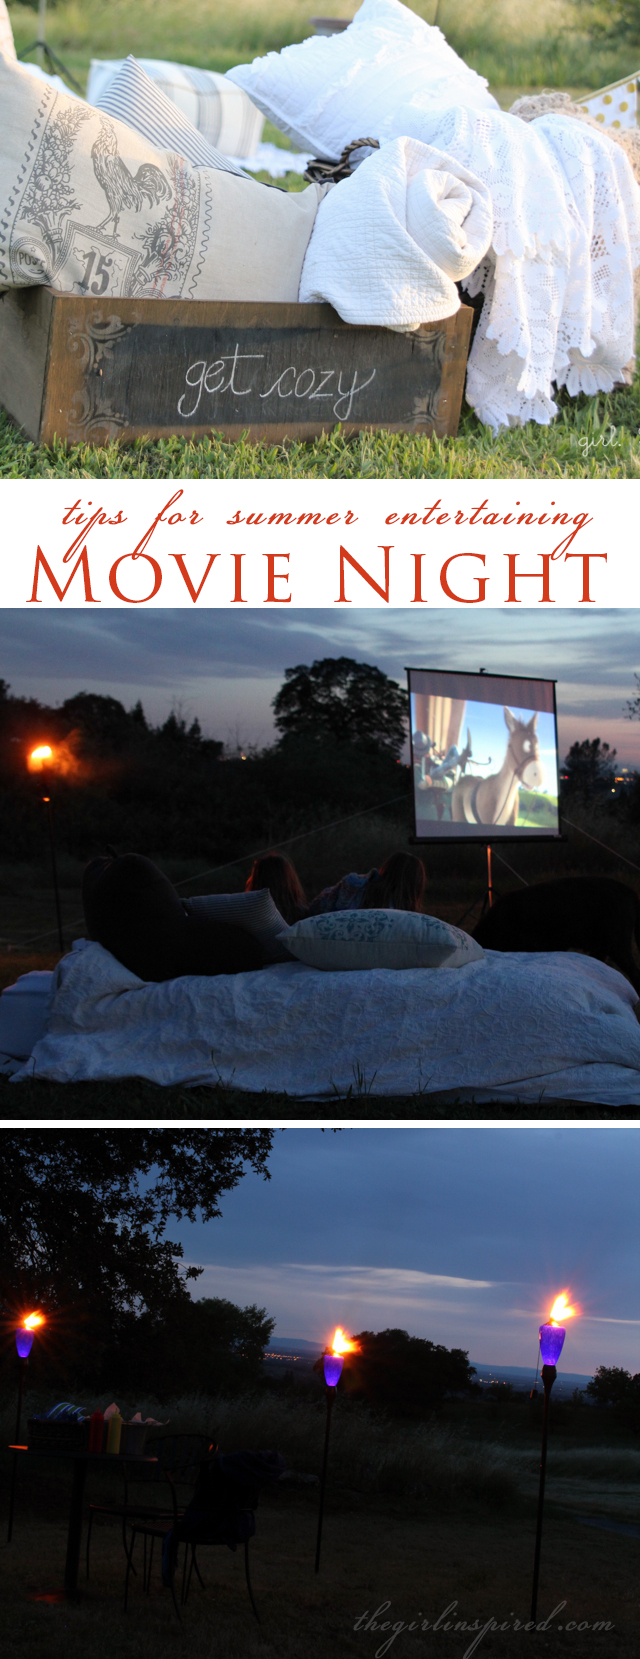 Outdoor Movie Night and seven secrets for summer entertaining